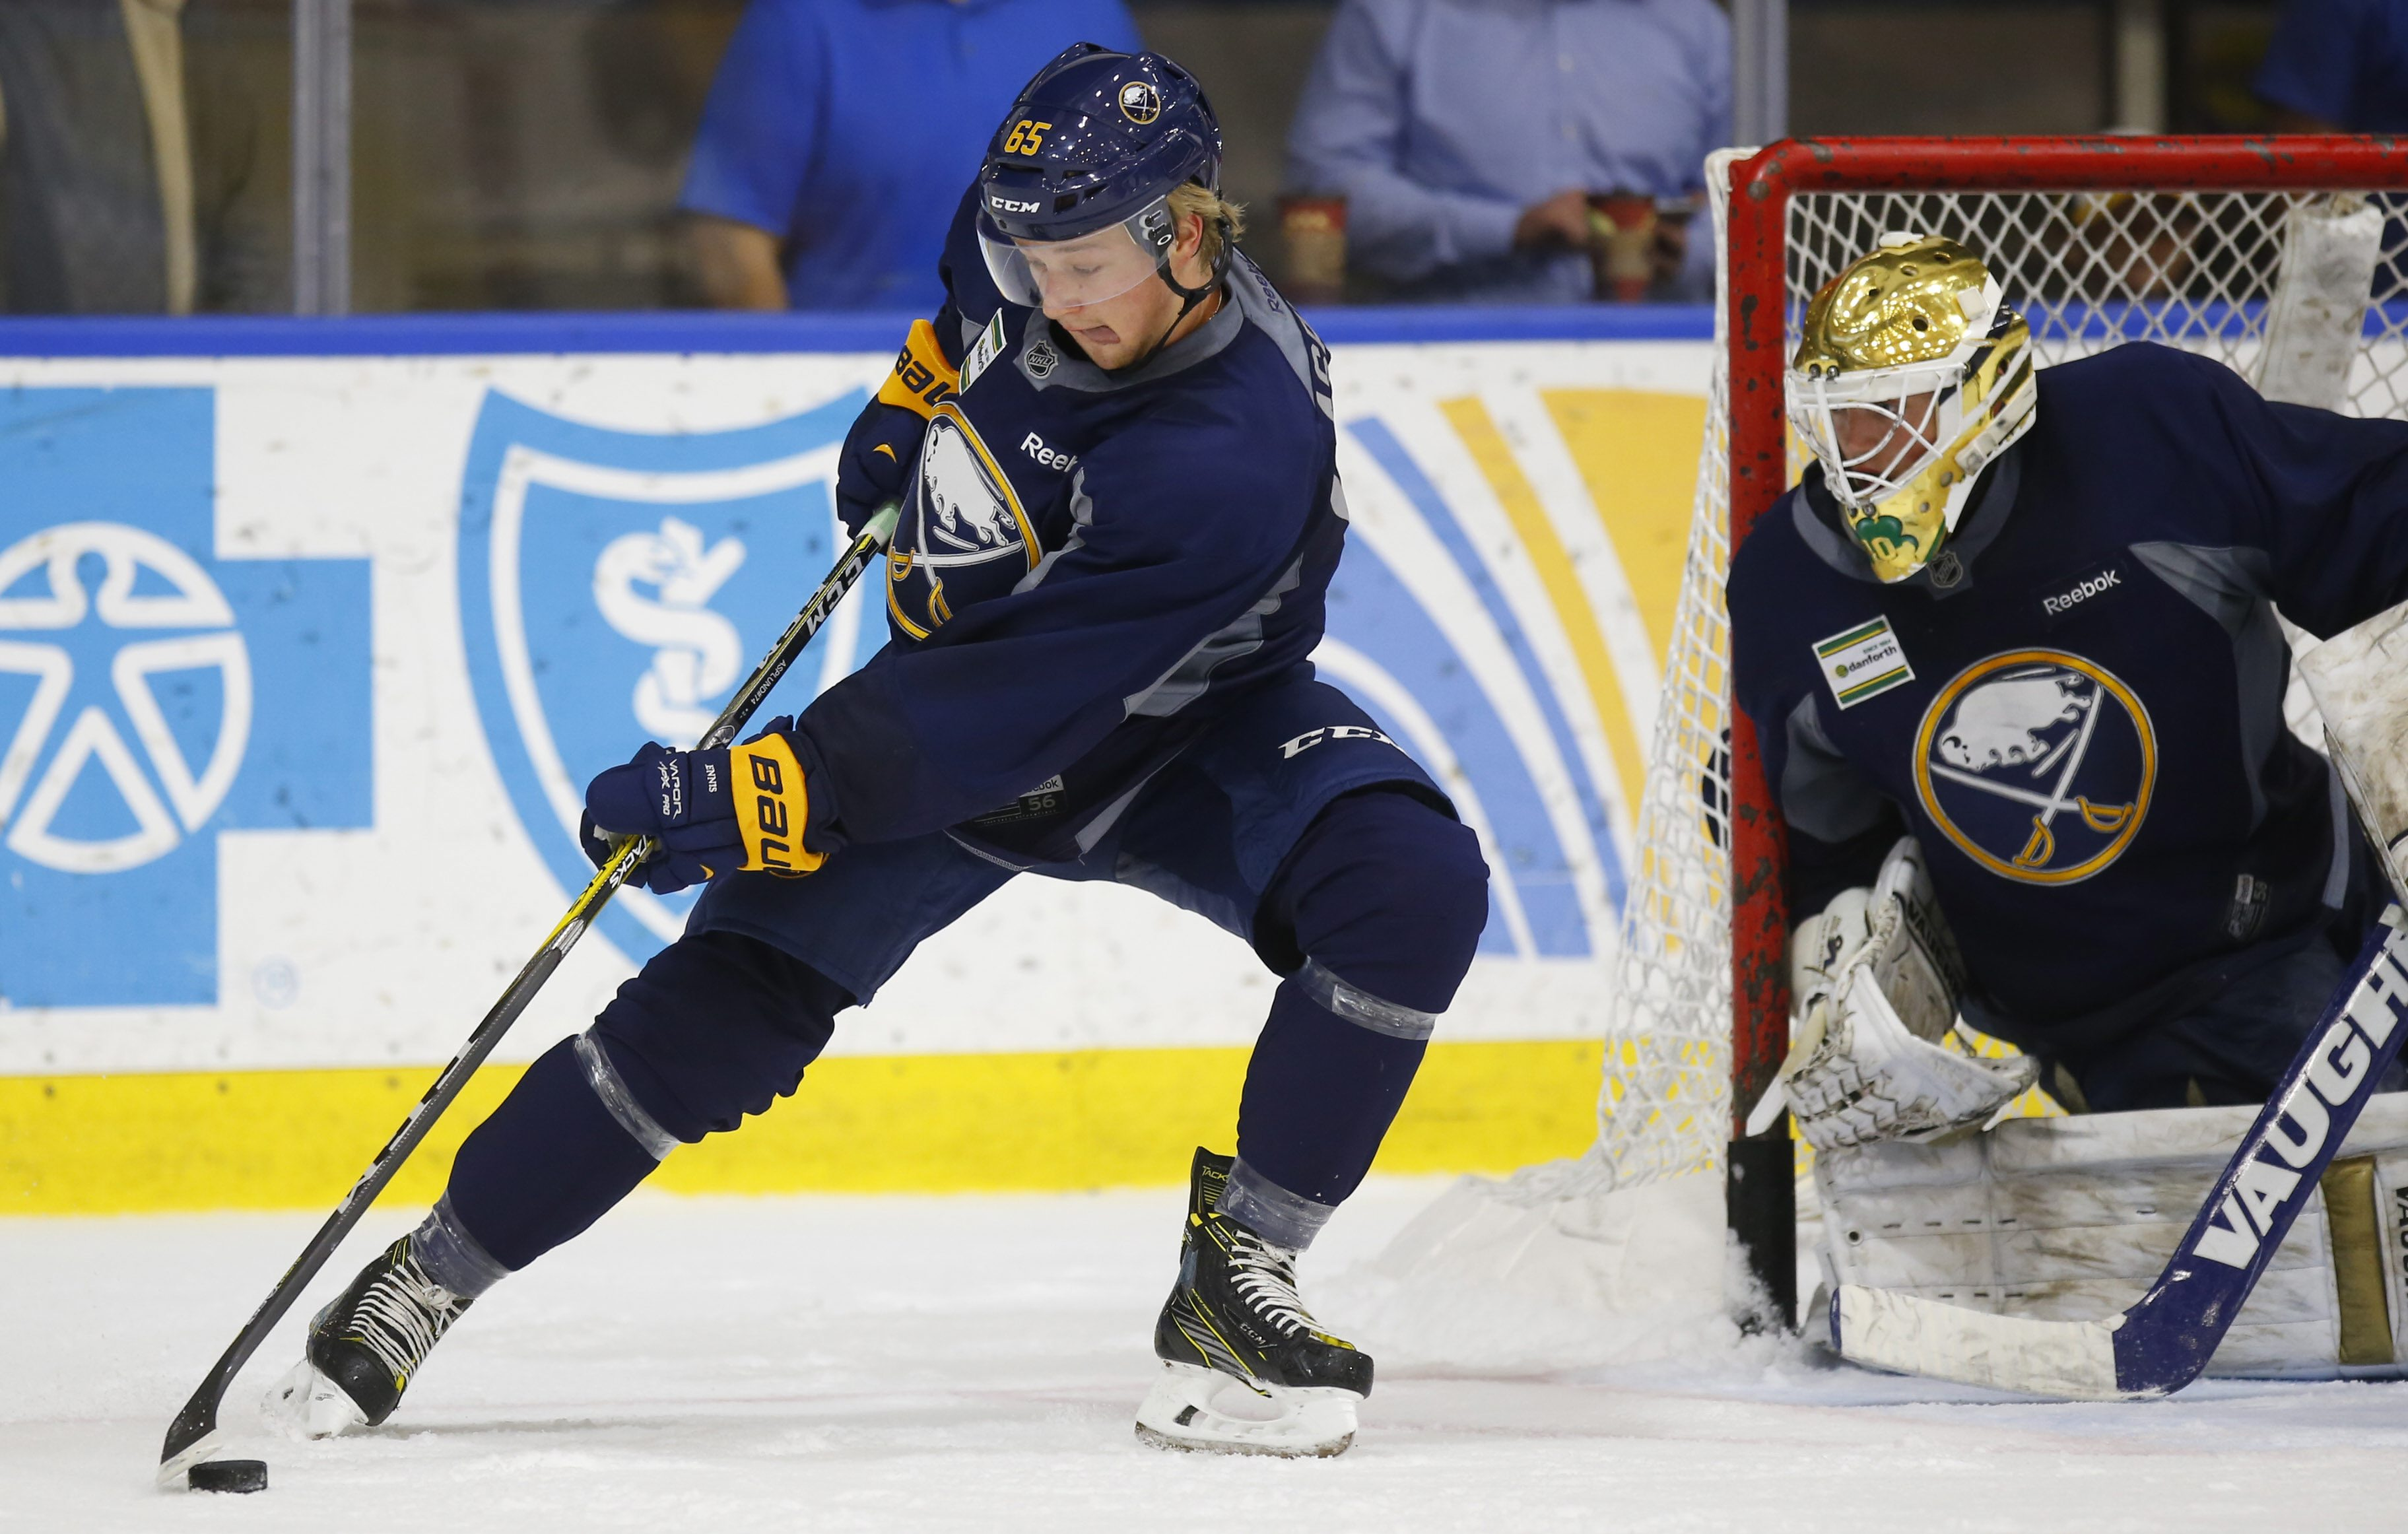 Buffalo Sabres prospect Rasmus Asplund skates with the puck during the team's 2016 development camp. (Harry Scull Jr./Buffalo News)